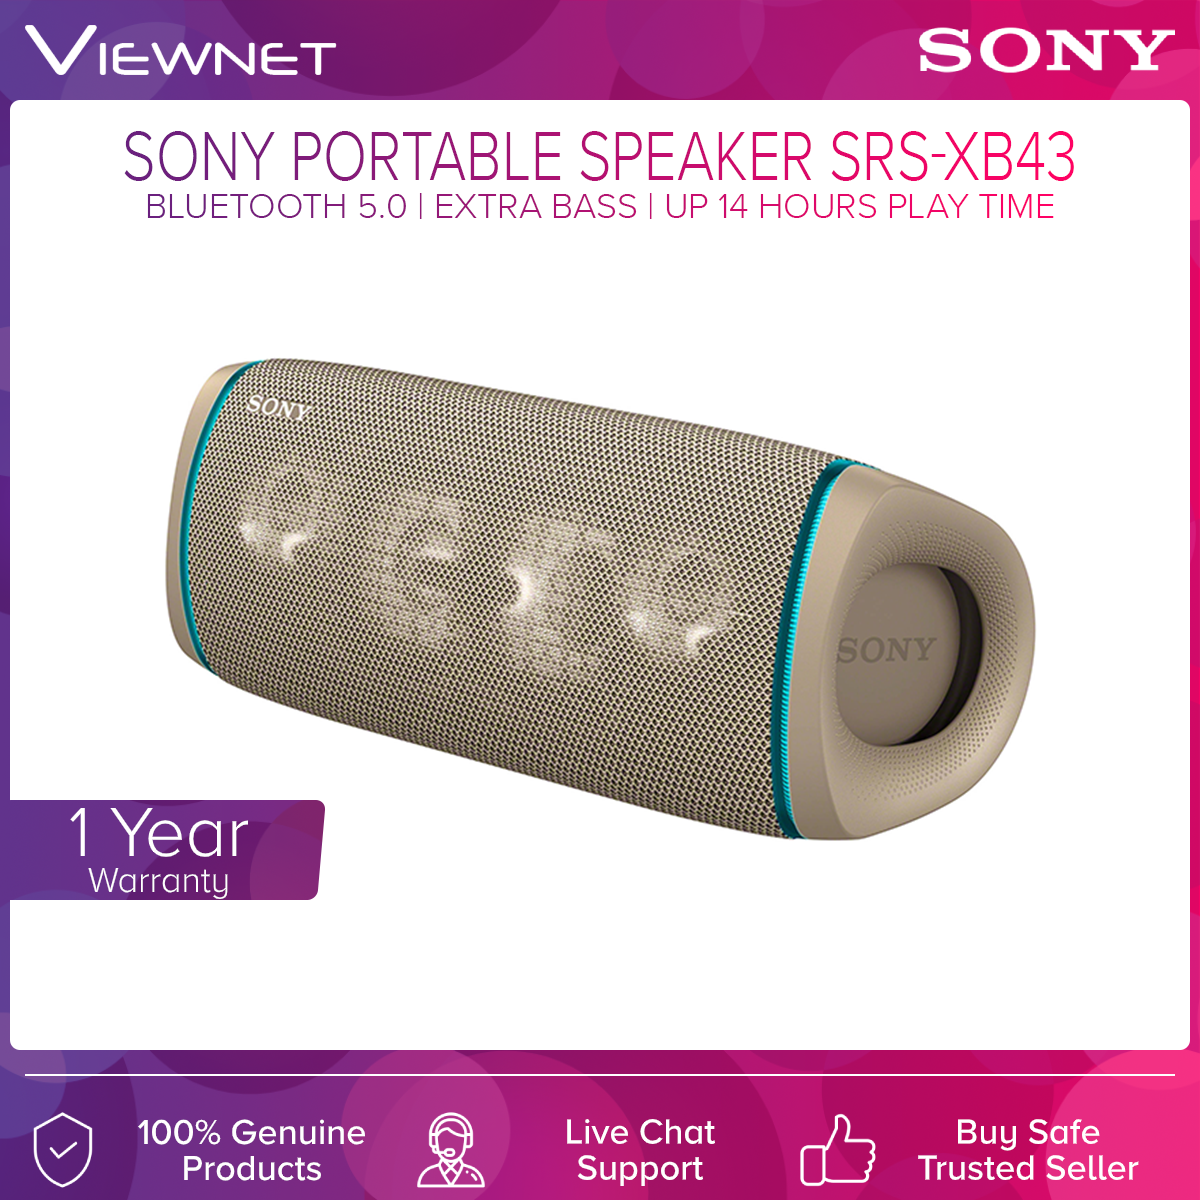 Sony Bluetooth Portable Speaker SRS-XB43 with Bluetooth 5.0 Connection, Extra Bass, IP67 Rated, X-Balanced Speaker Unit, Up To 14 Hours Play Time, Sony Music Center App Support